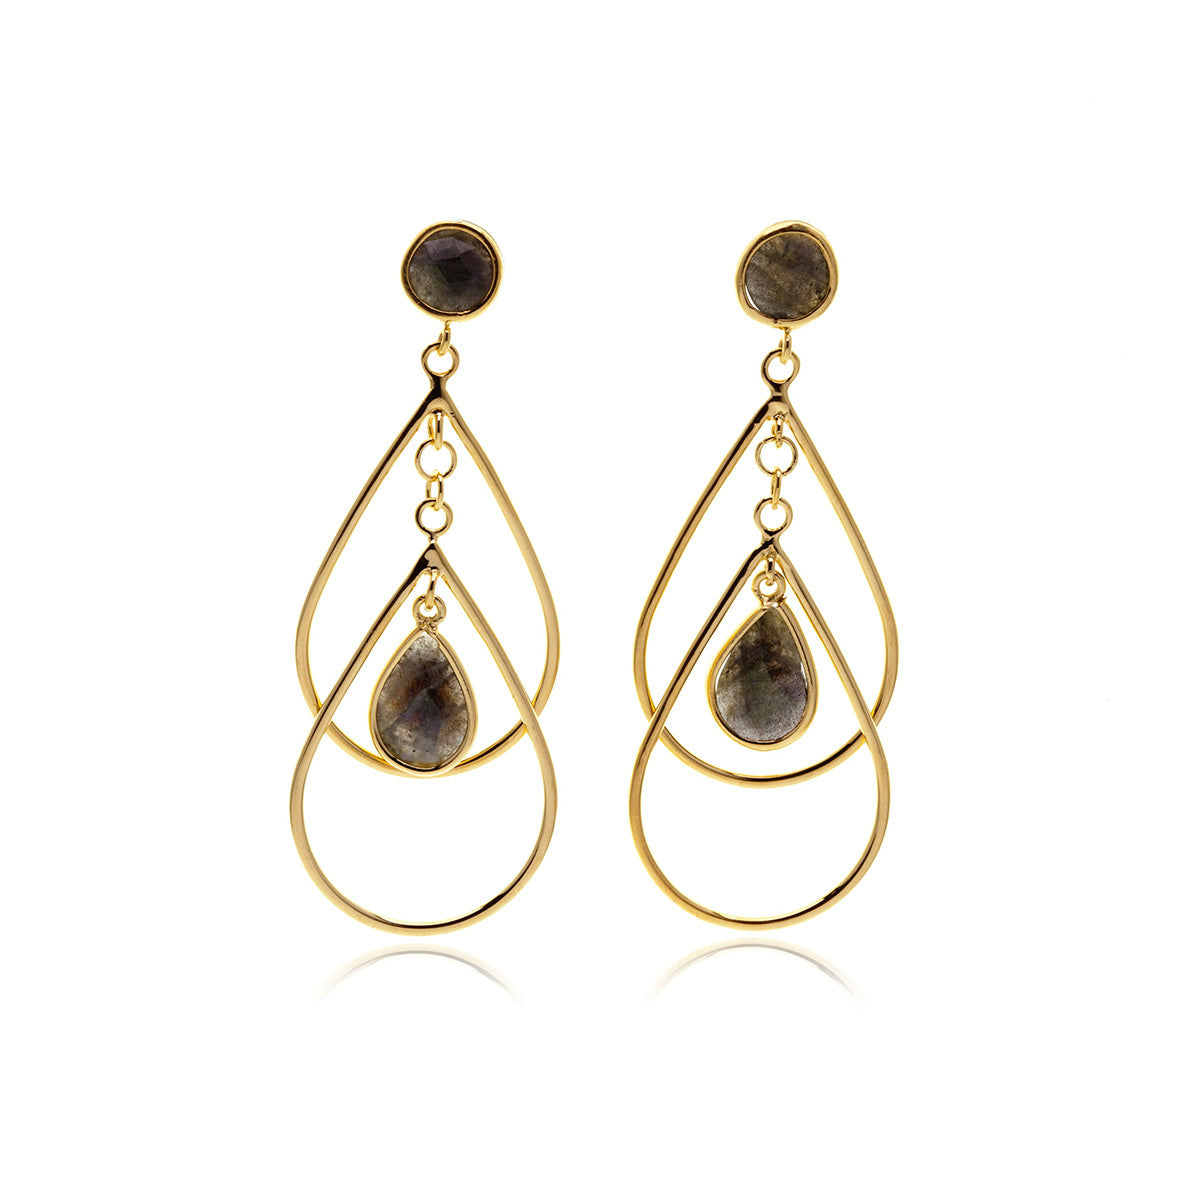 Luxe Dream Earrings - MCK Brands